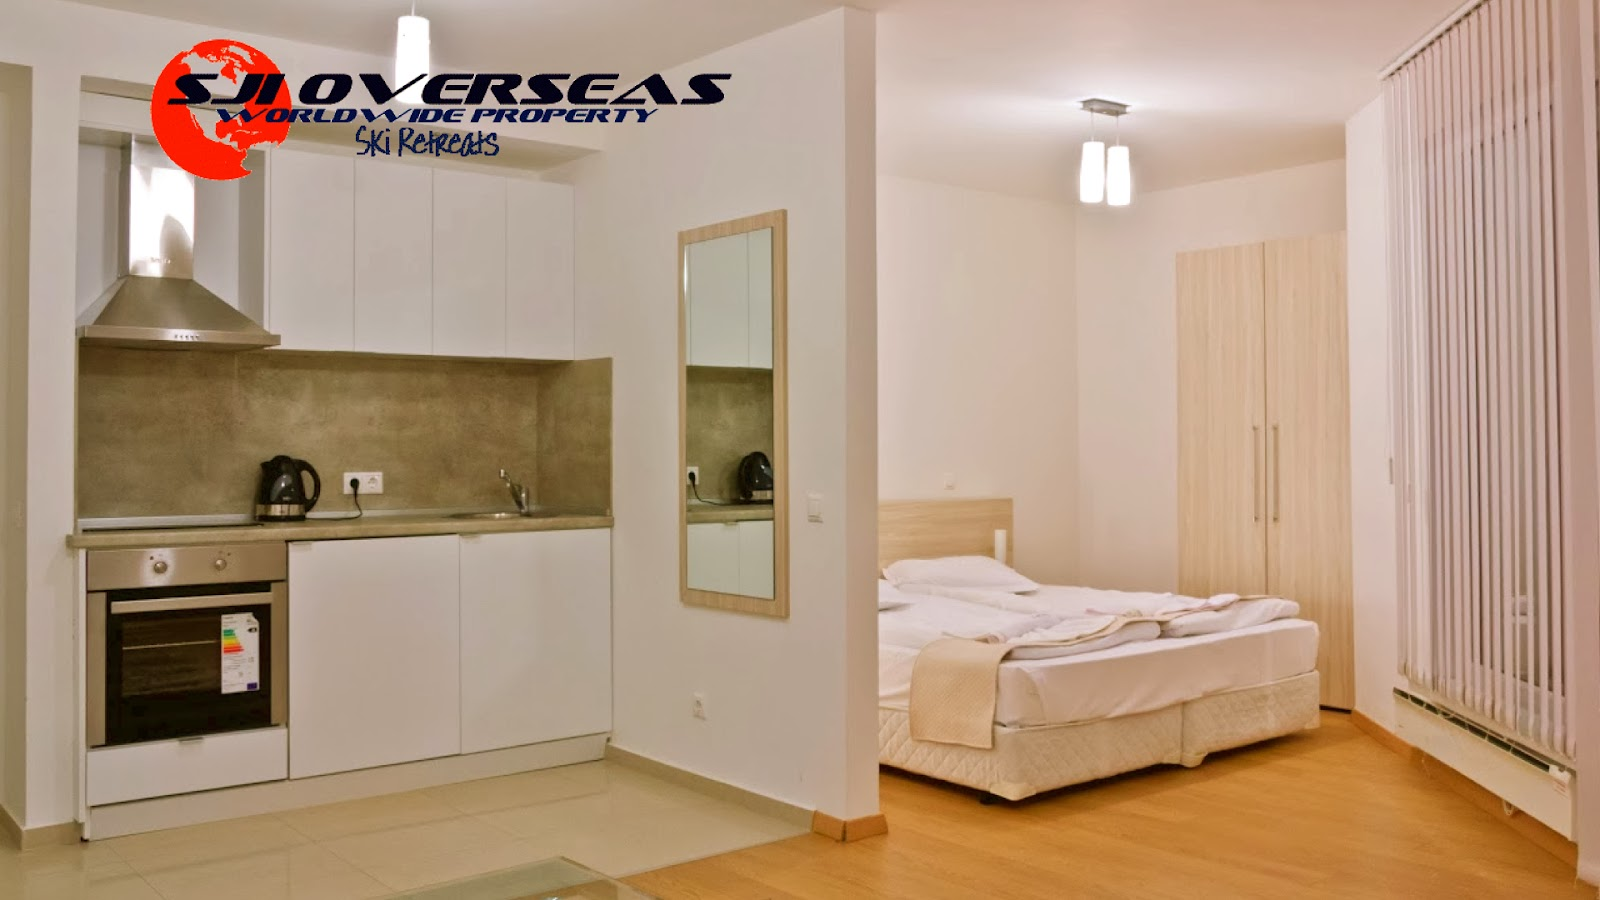 Our Luxury Studios Are Perhaps Best Thought Of As 1 Bedroom Apartments The Sleeping Area Is Separate From Living But They Open Plan With No